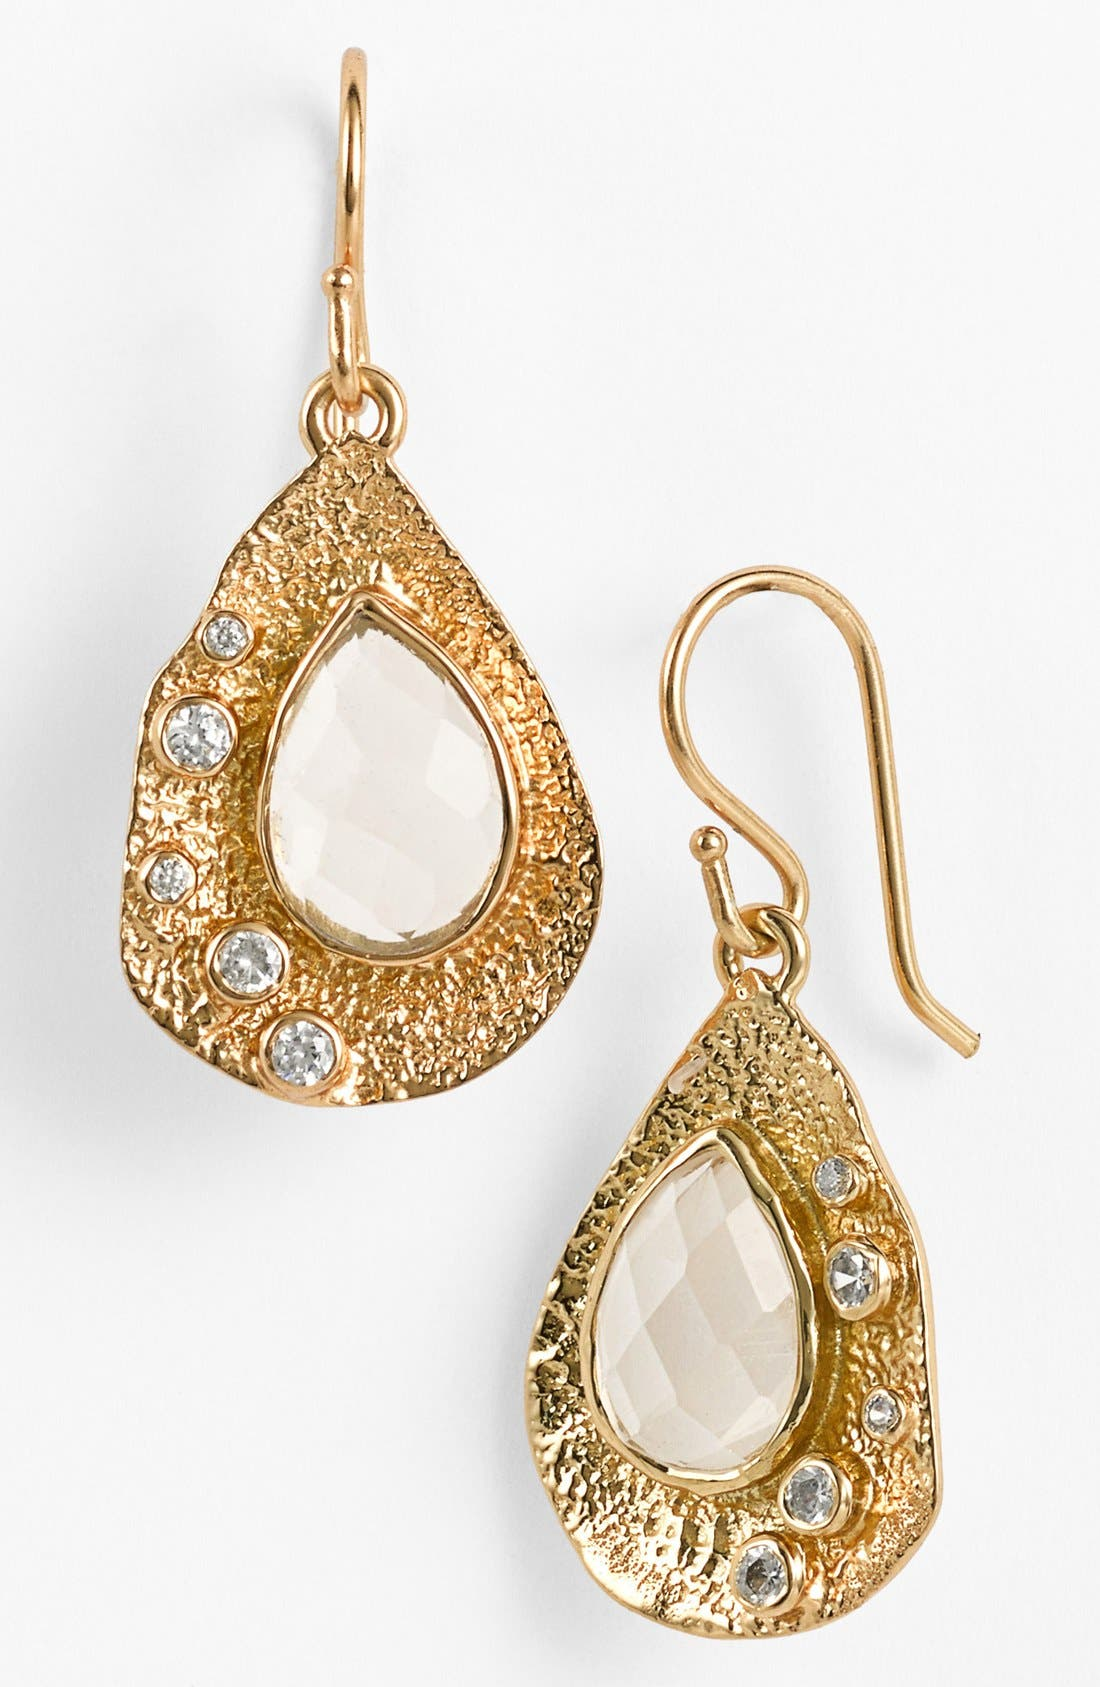 Alternate Image 1 Selected - Melinda Maria 'Maggie' Teardrop Earrings